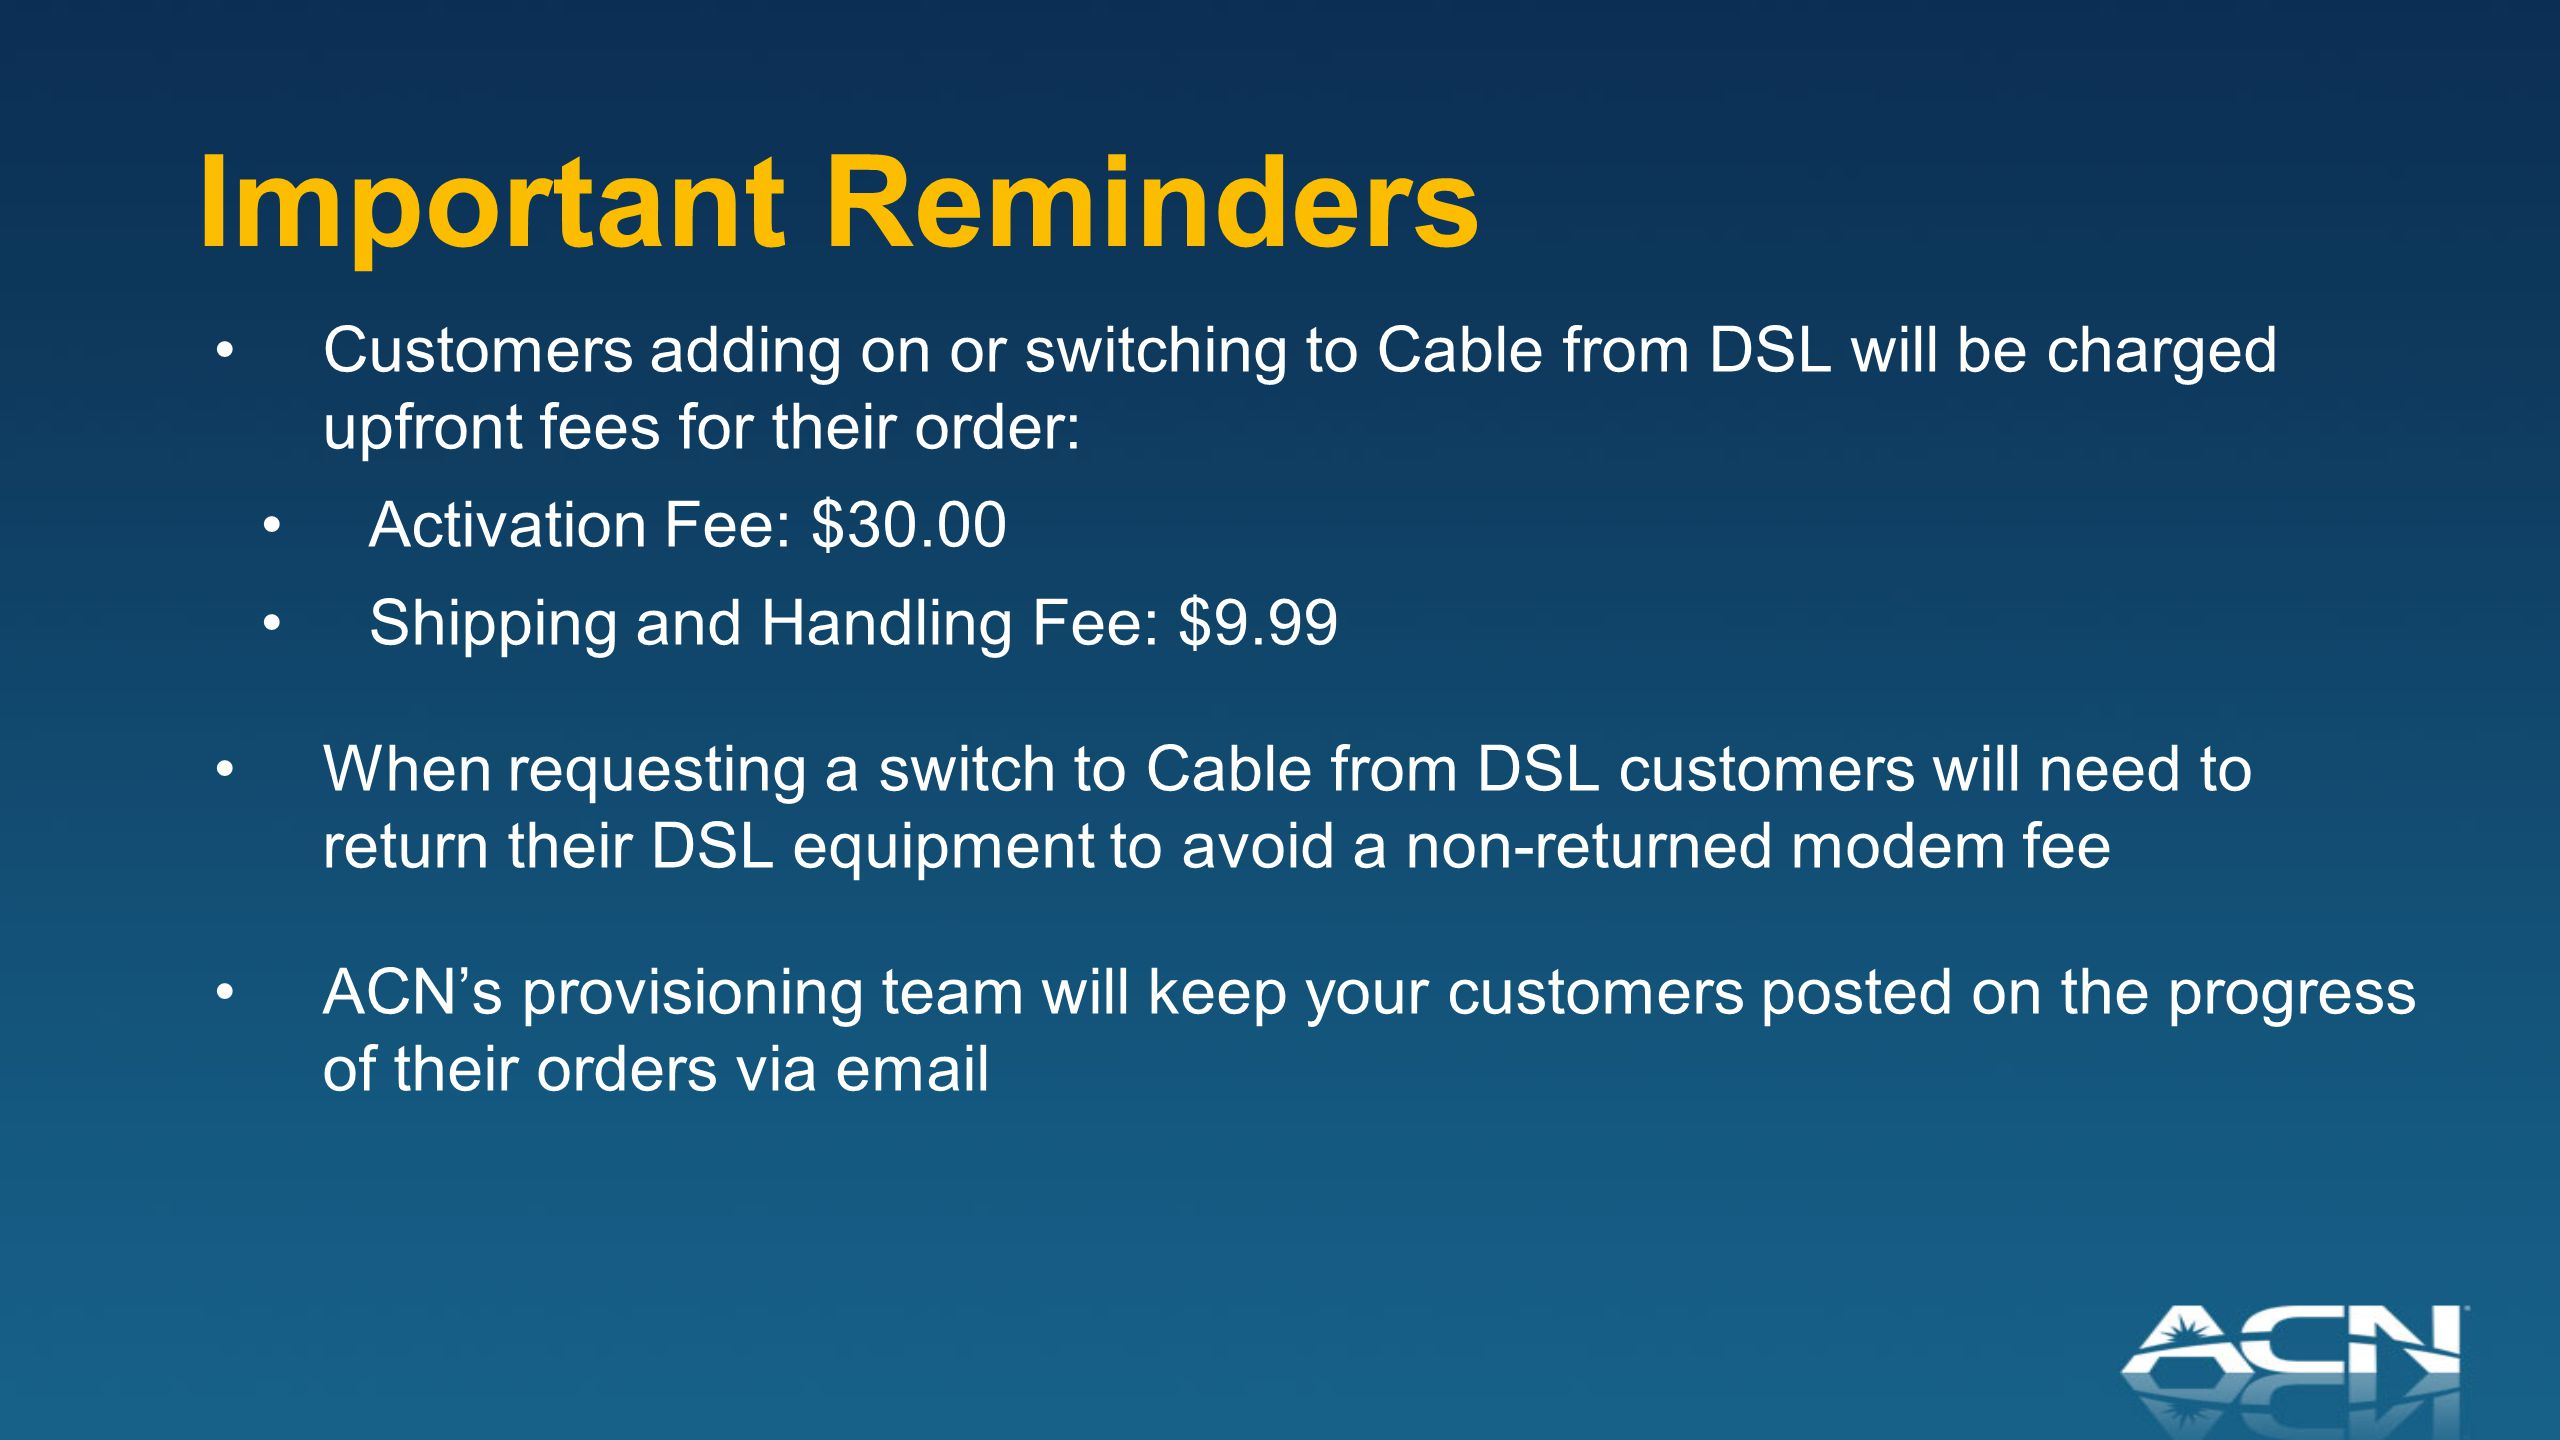 Important Reminders Customers adding on or switching to Cable from DSL will be charged upfront fees for their order: Activation Fee: $30.00 Shipping and Handling Fee: $9.99 When requesting a switch to Cable from DSL customers will need to return their DSL equipment to avoid a non-returned modem fee ACN's provisioning team will keep your customers posted on the progress of their orders via email